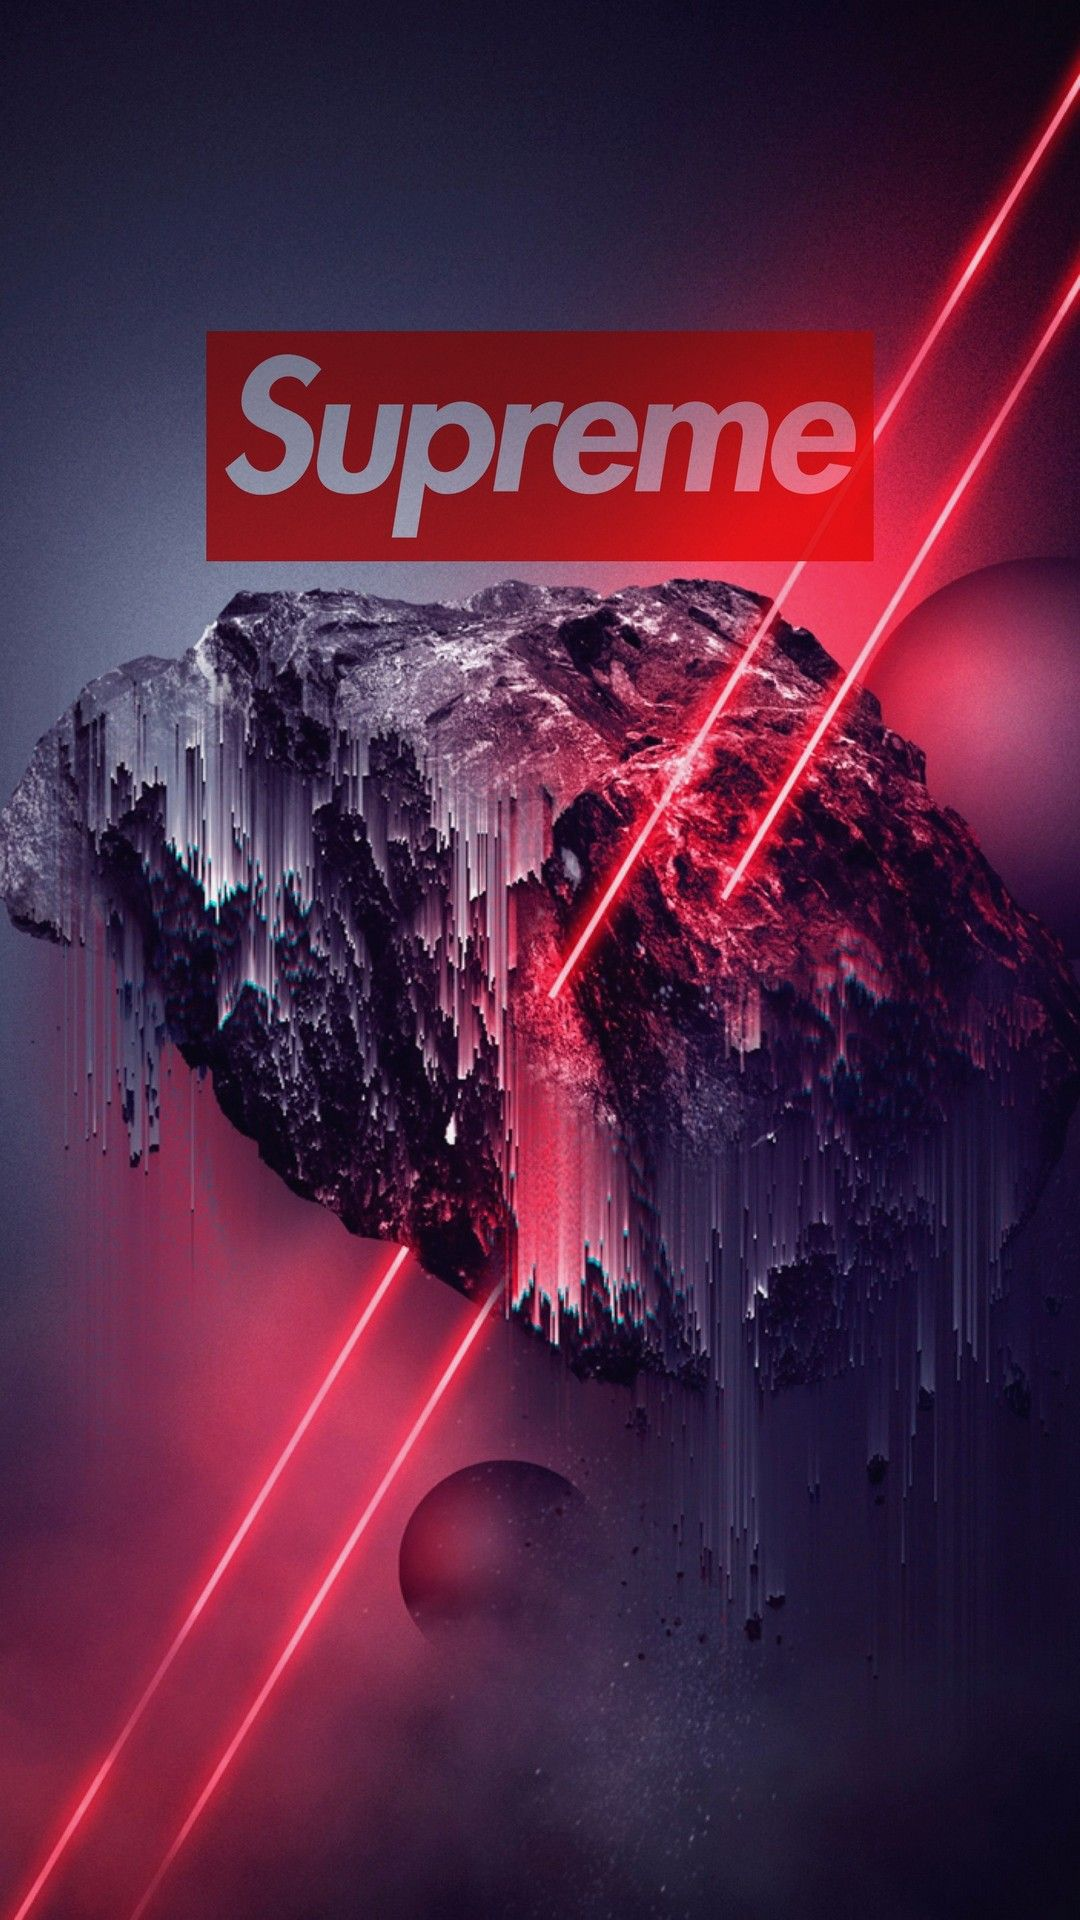 Phones Wallpaper Cool With High Resolution 1080x1920 Pixel Download All Mobile Wallpapers And Use T In 2020 Supreme Iphone Wallpaper Supreme Wallpaper Crazy Wallpaper